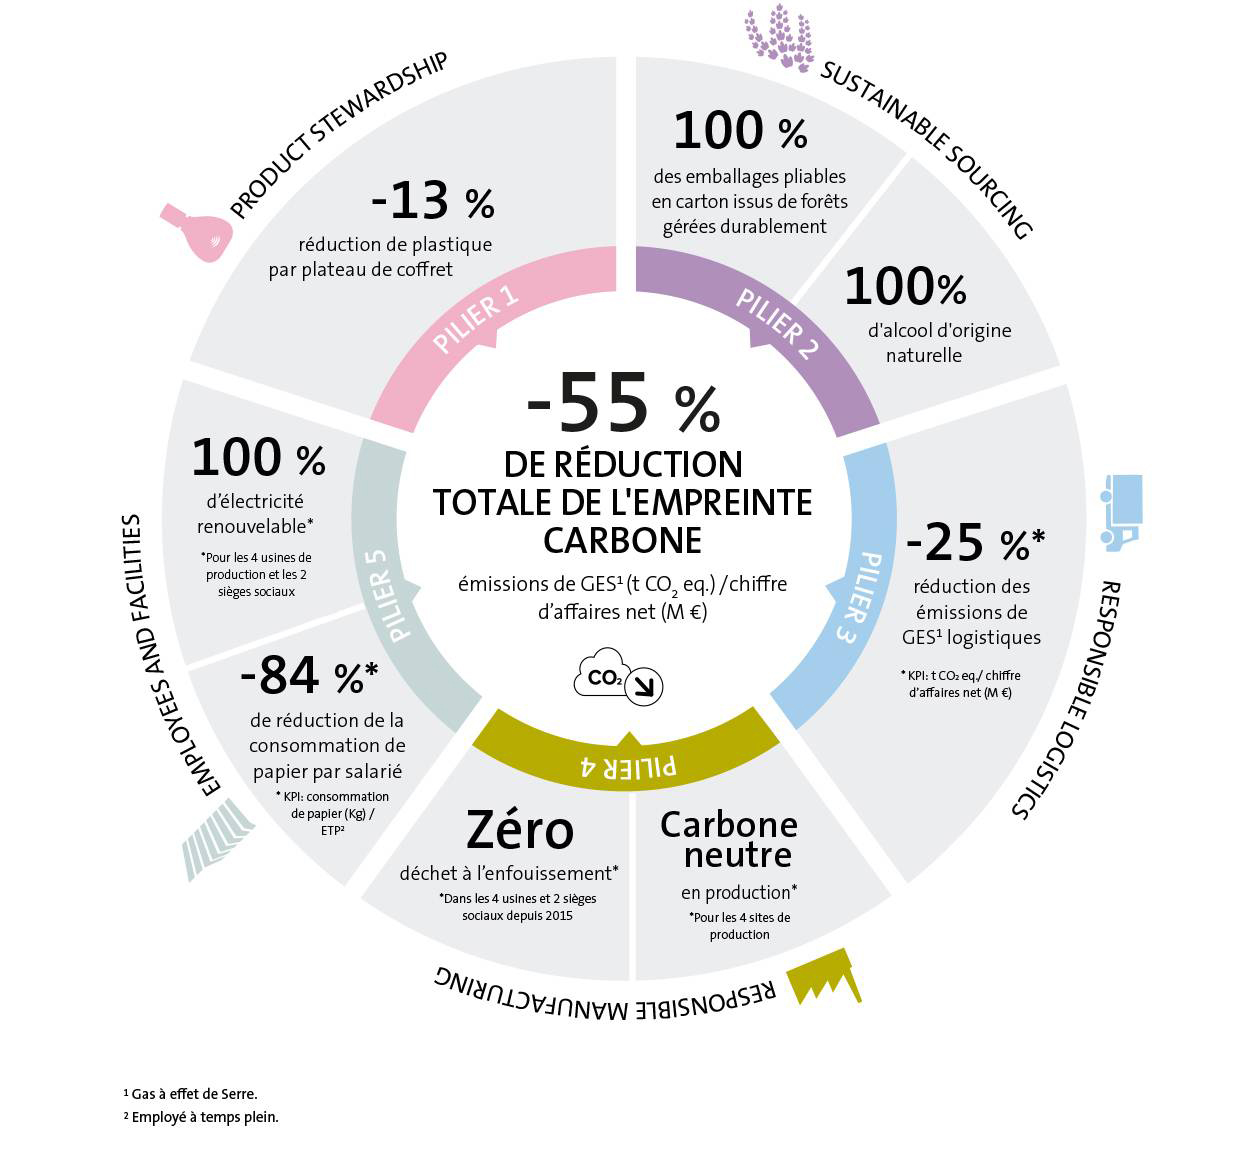 Sustainability At Puig Infographic 02